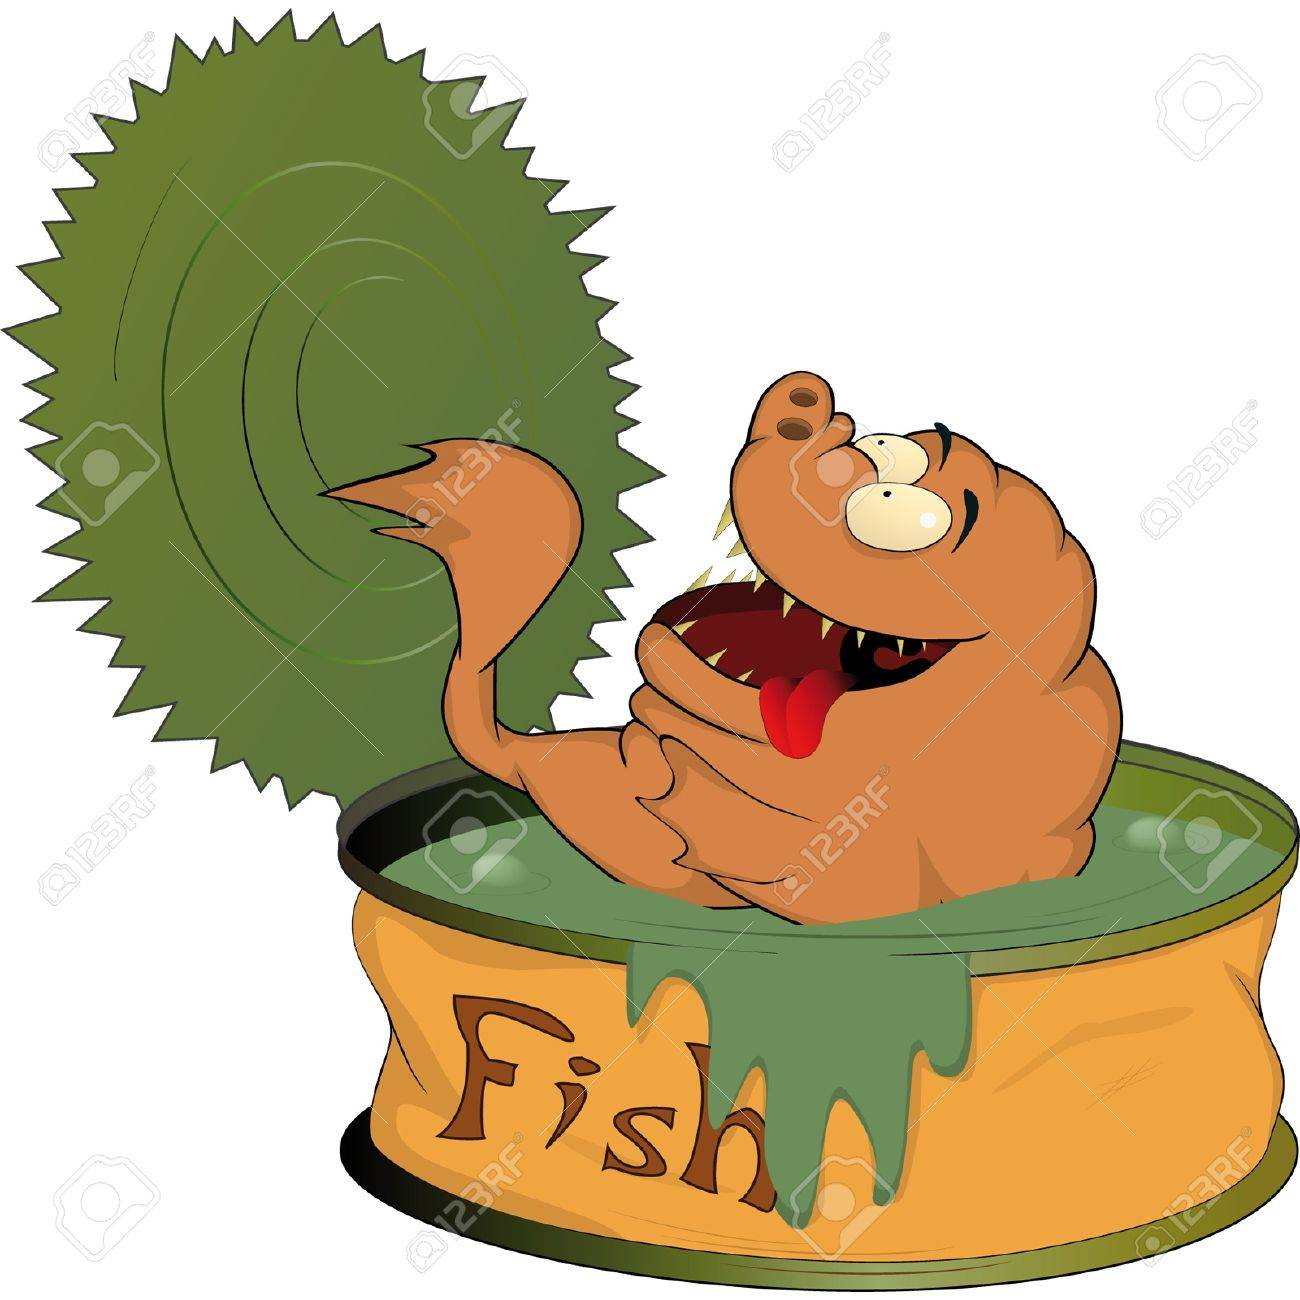 Fish canned food - 12498416